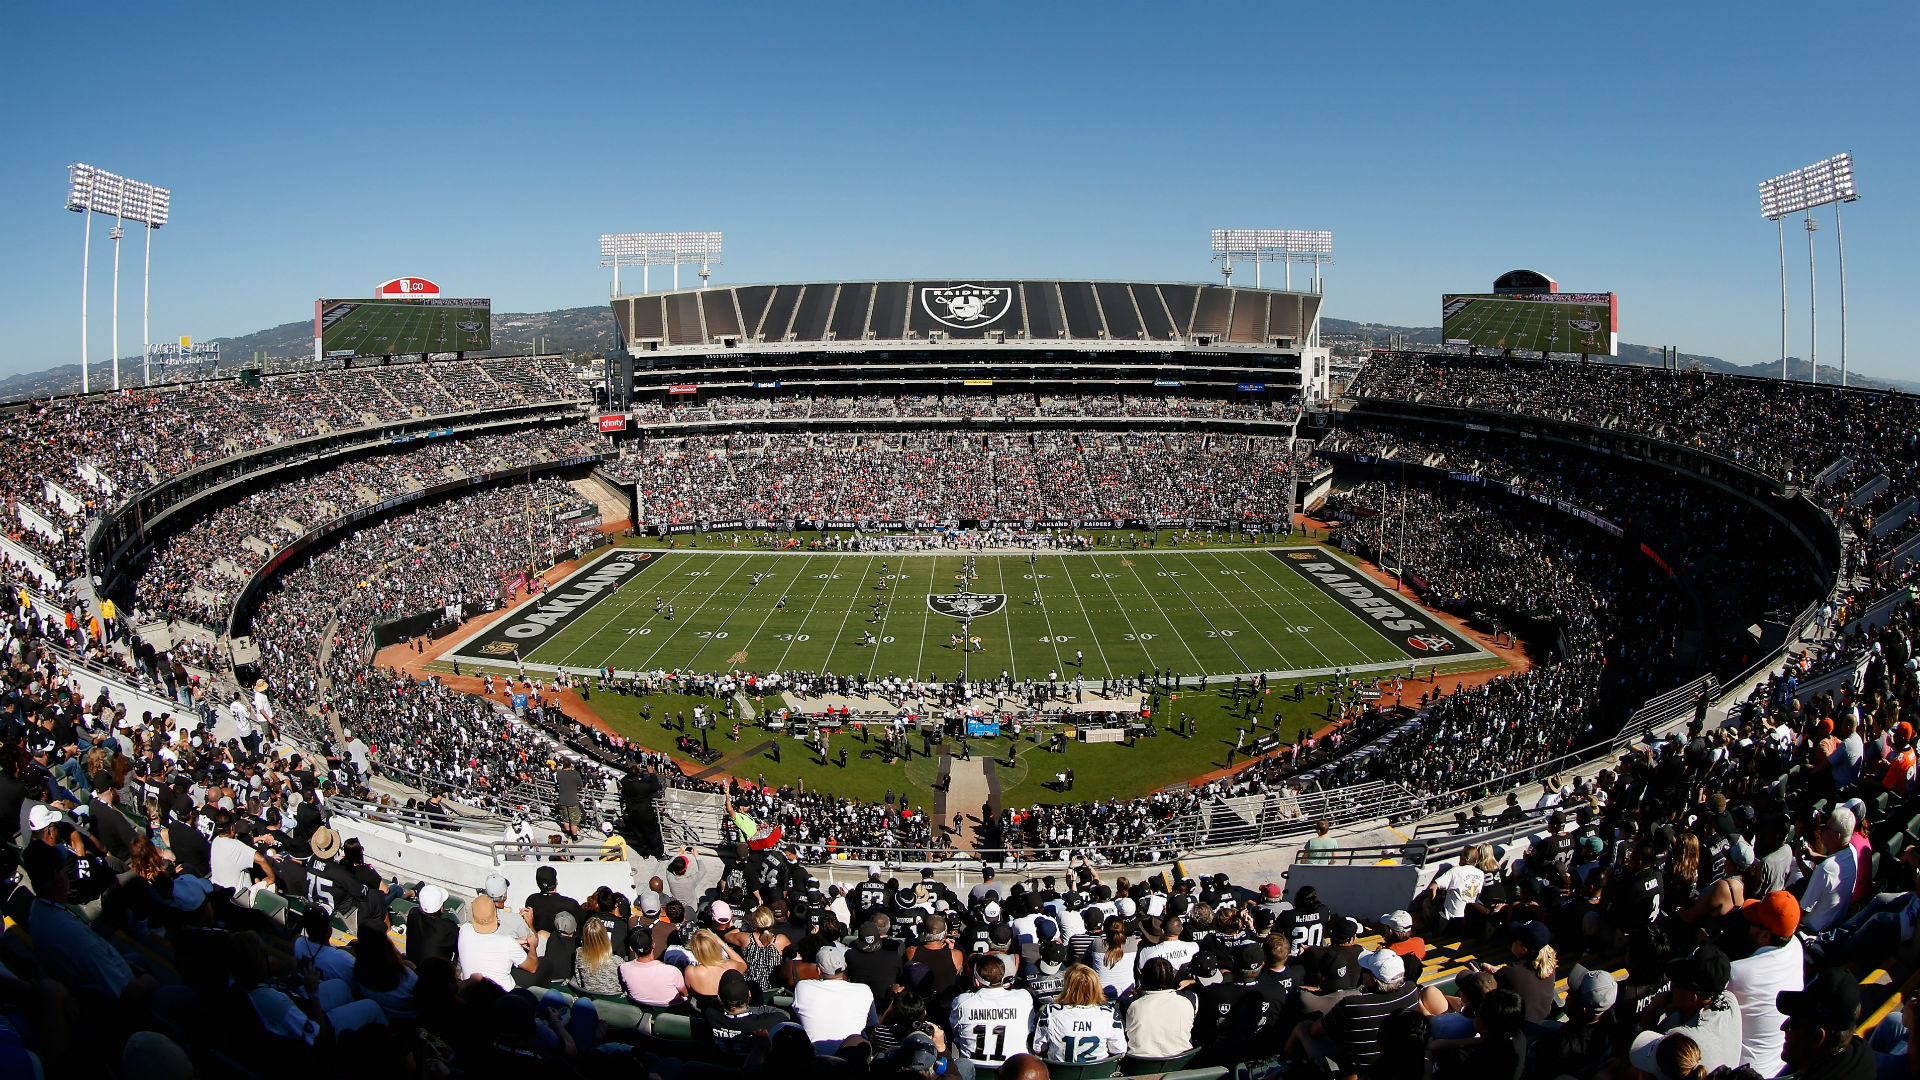 Raiders Announce Deal To Stay In Oakland For 2016 Season